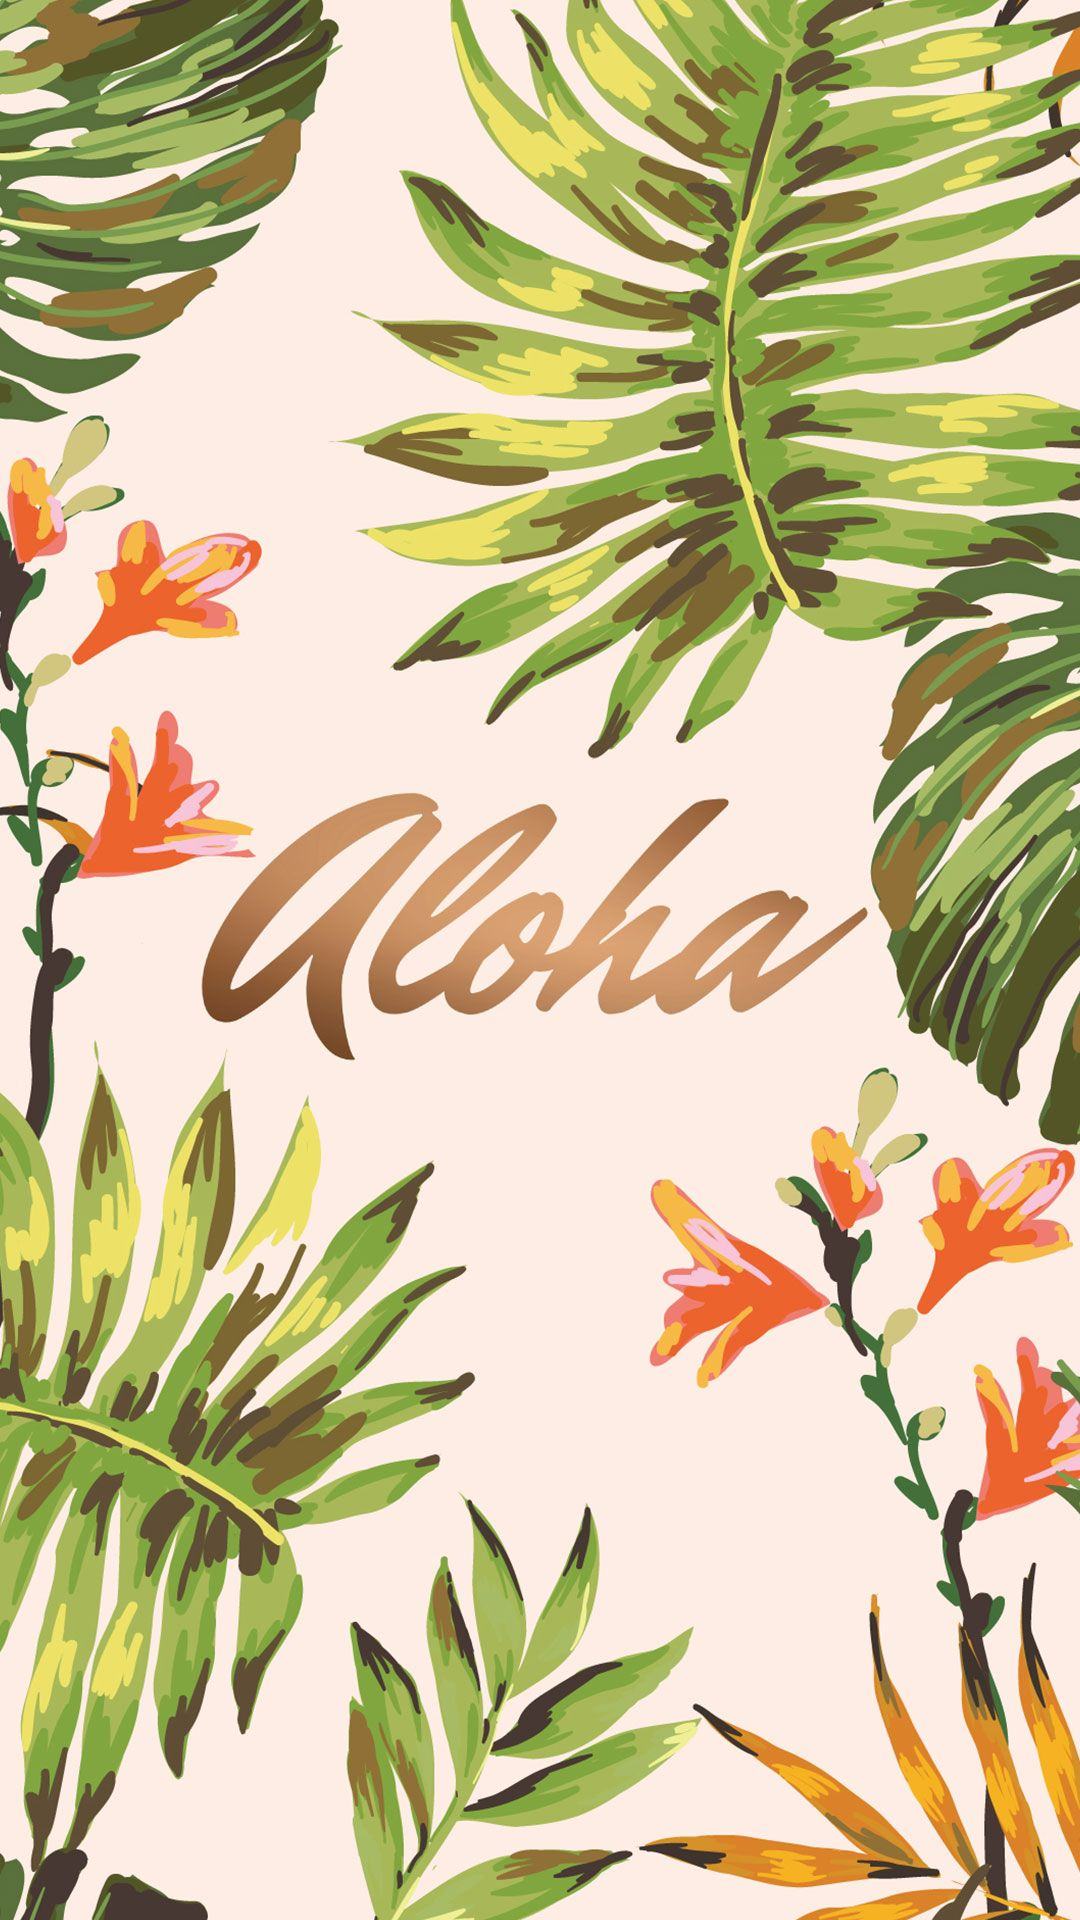 Aloha Wallpaper For Iphone Android Cute Wallpapers For Android Iphone Background Vintage Tropical Wallpaper